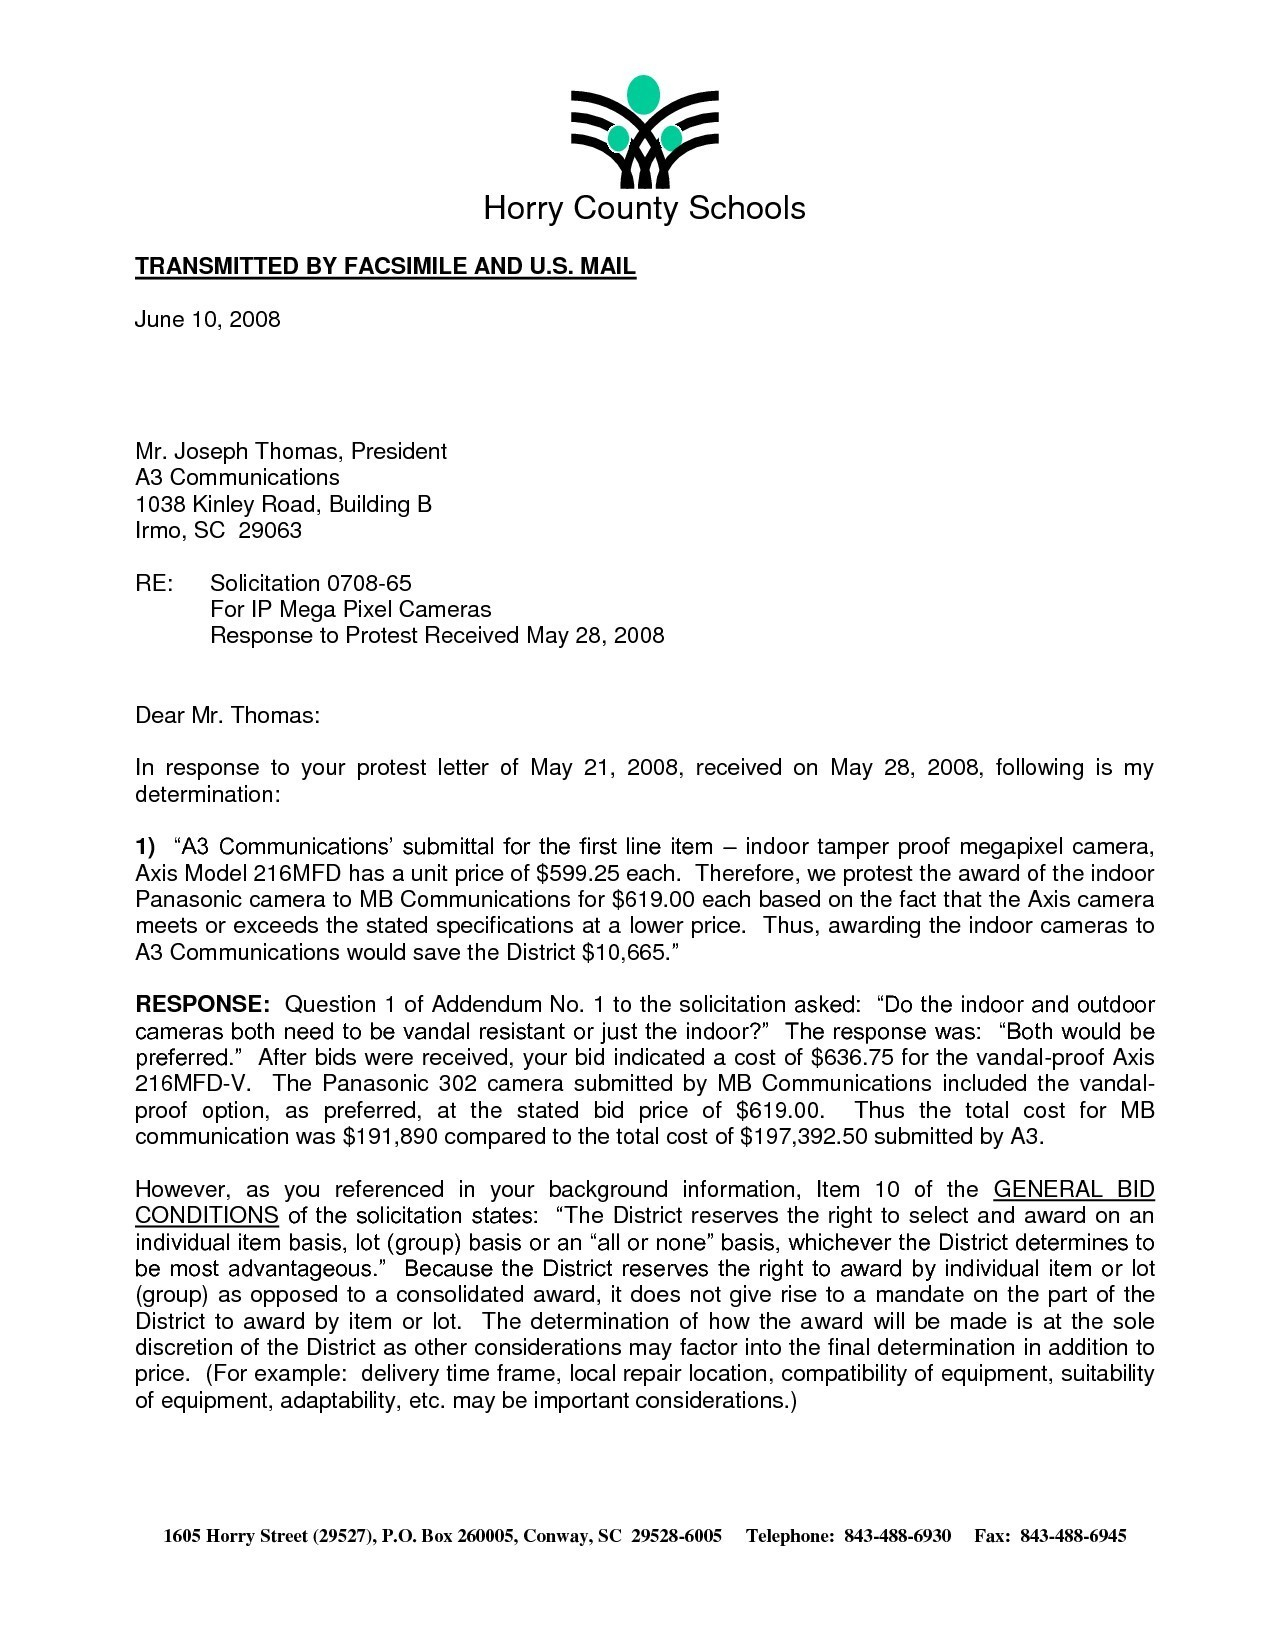 Irs Response Letter Template - format for Business Response Letter New Audit Response Letter Sample